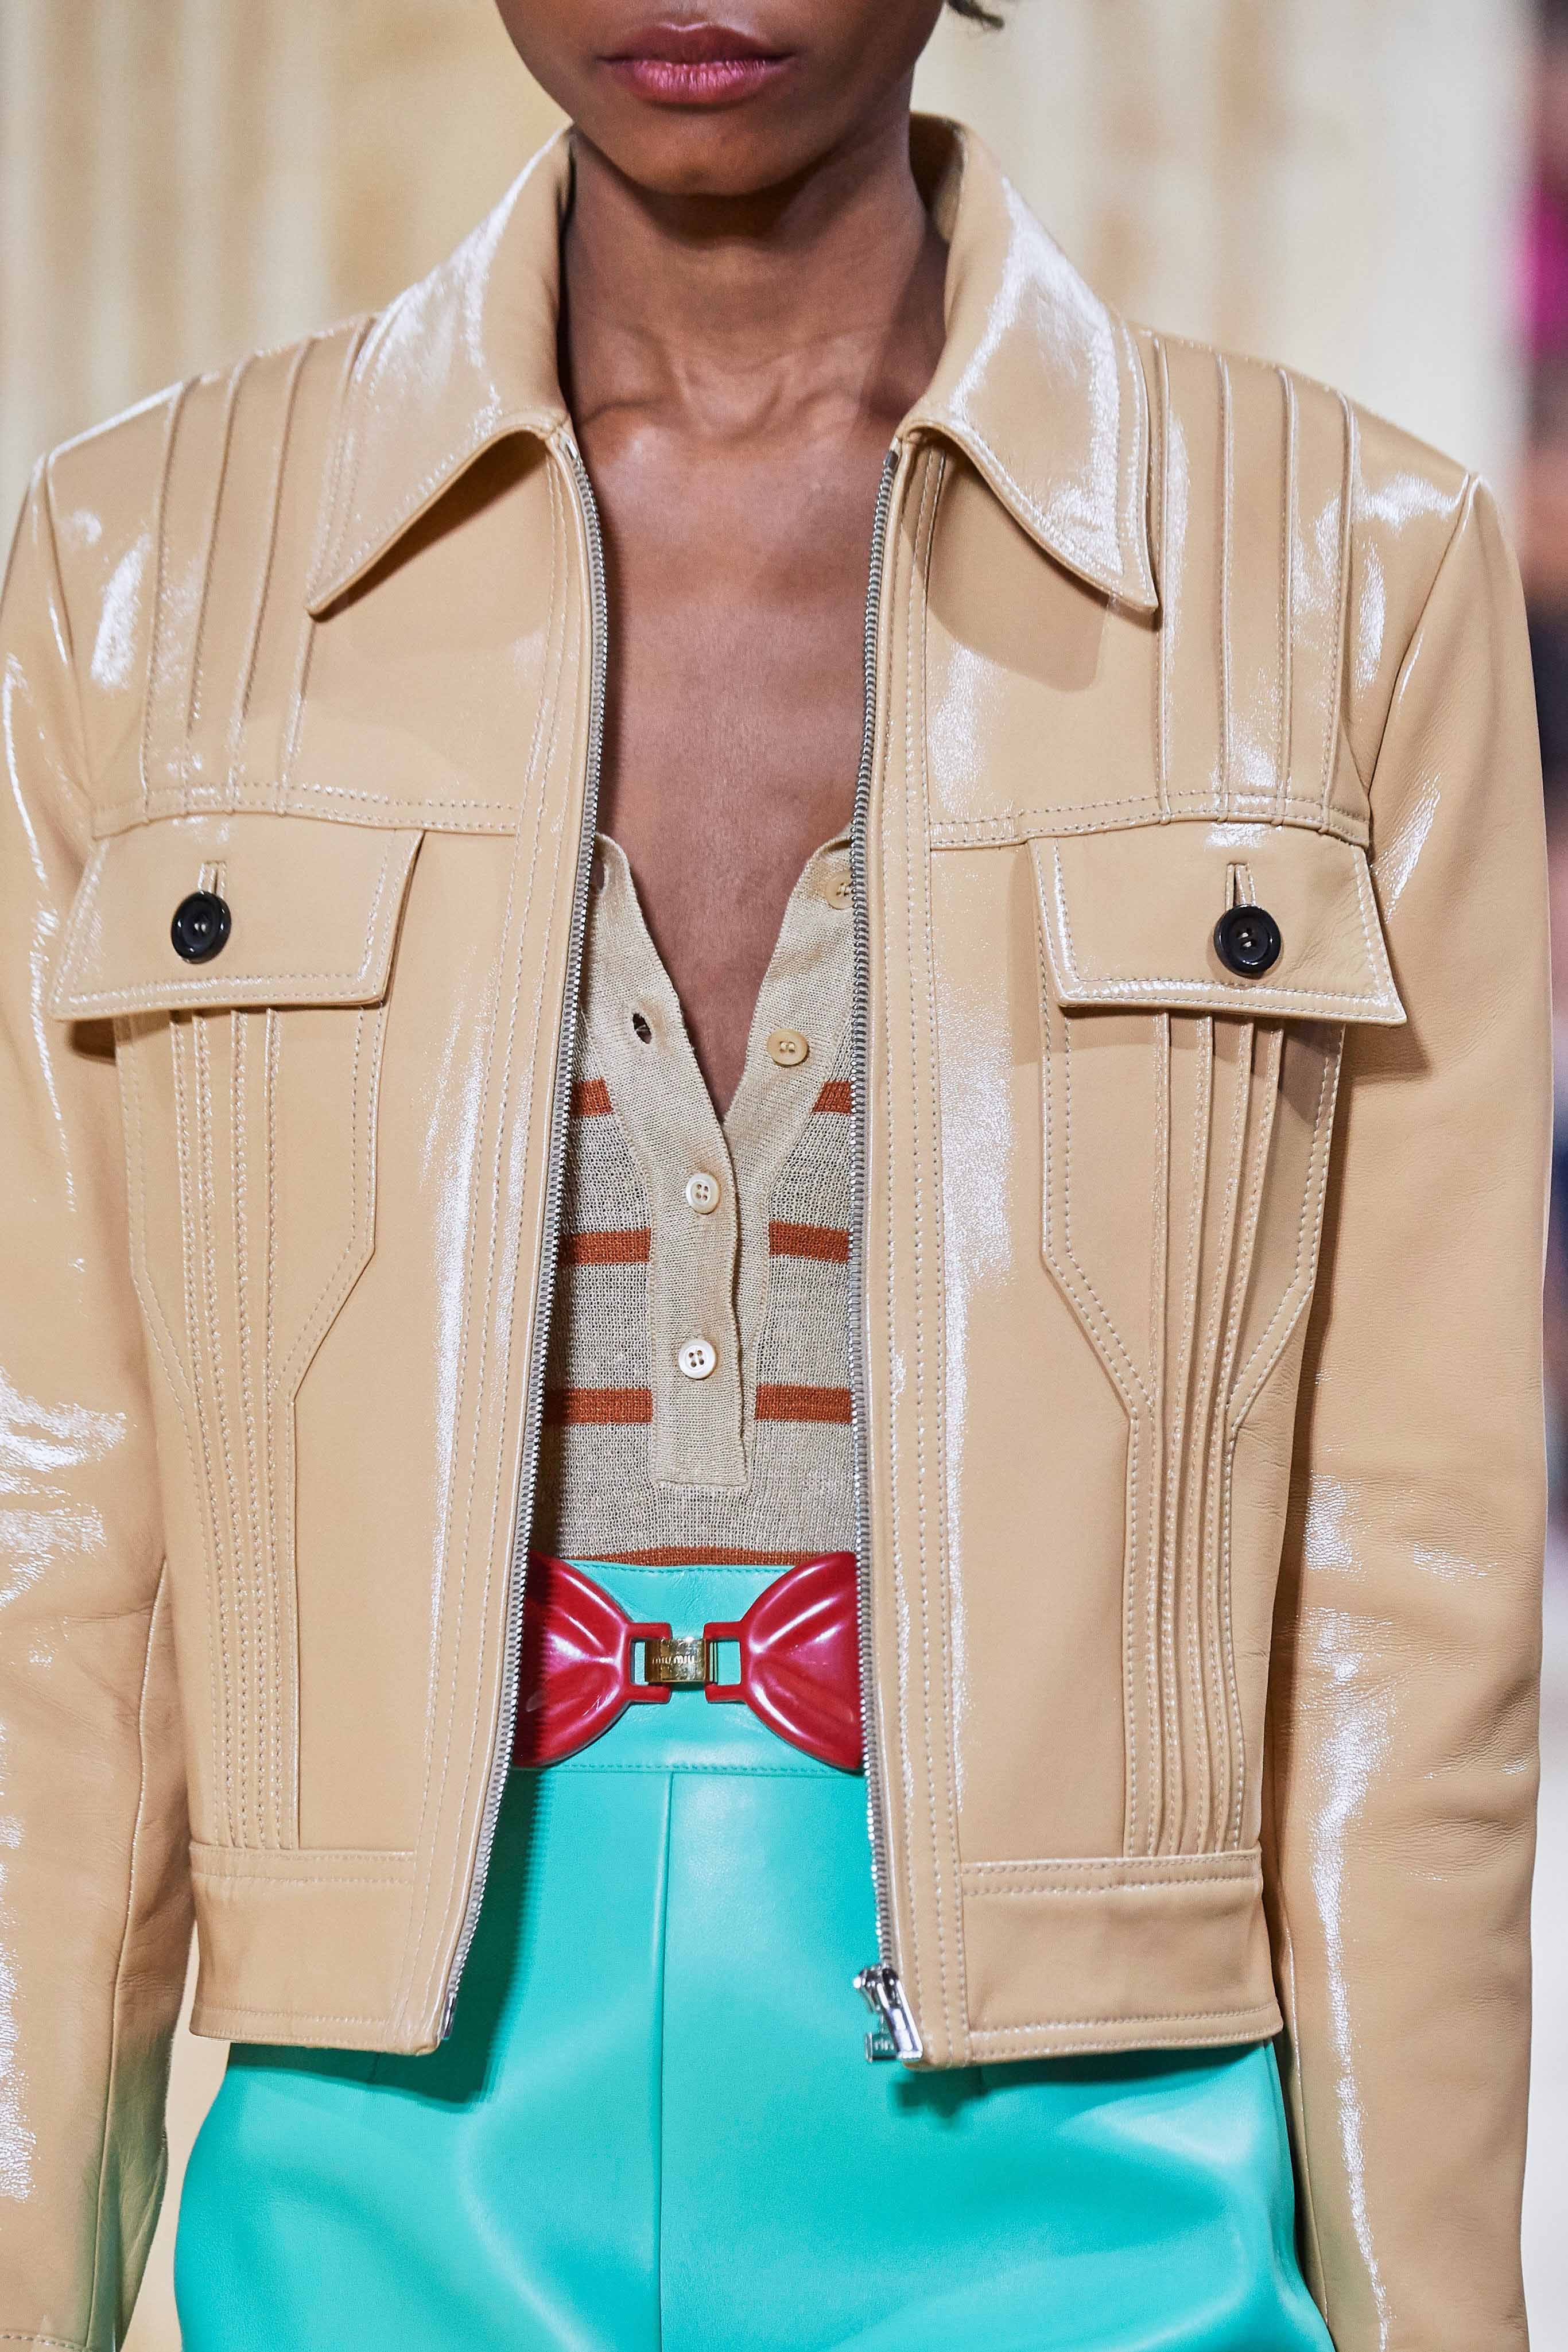 MiuMiu Spring Summer 2020 SS2020 trends runway coverage Ready To Wear Vogue details belt